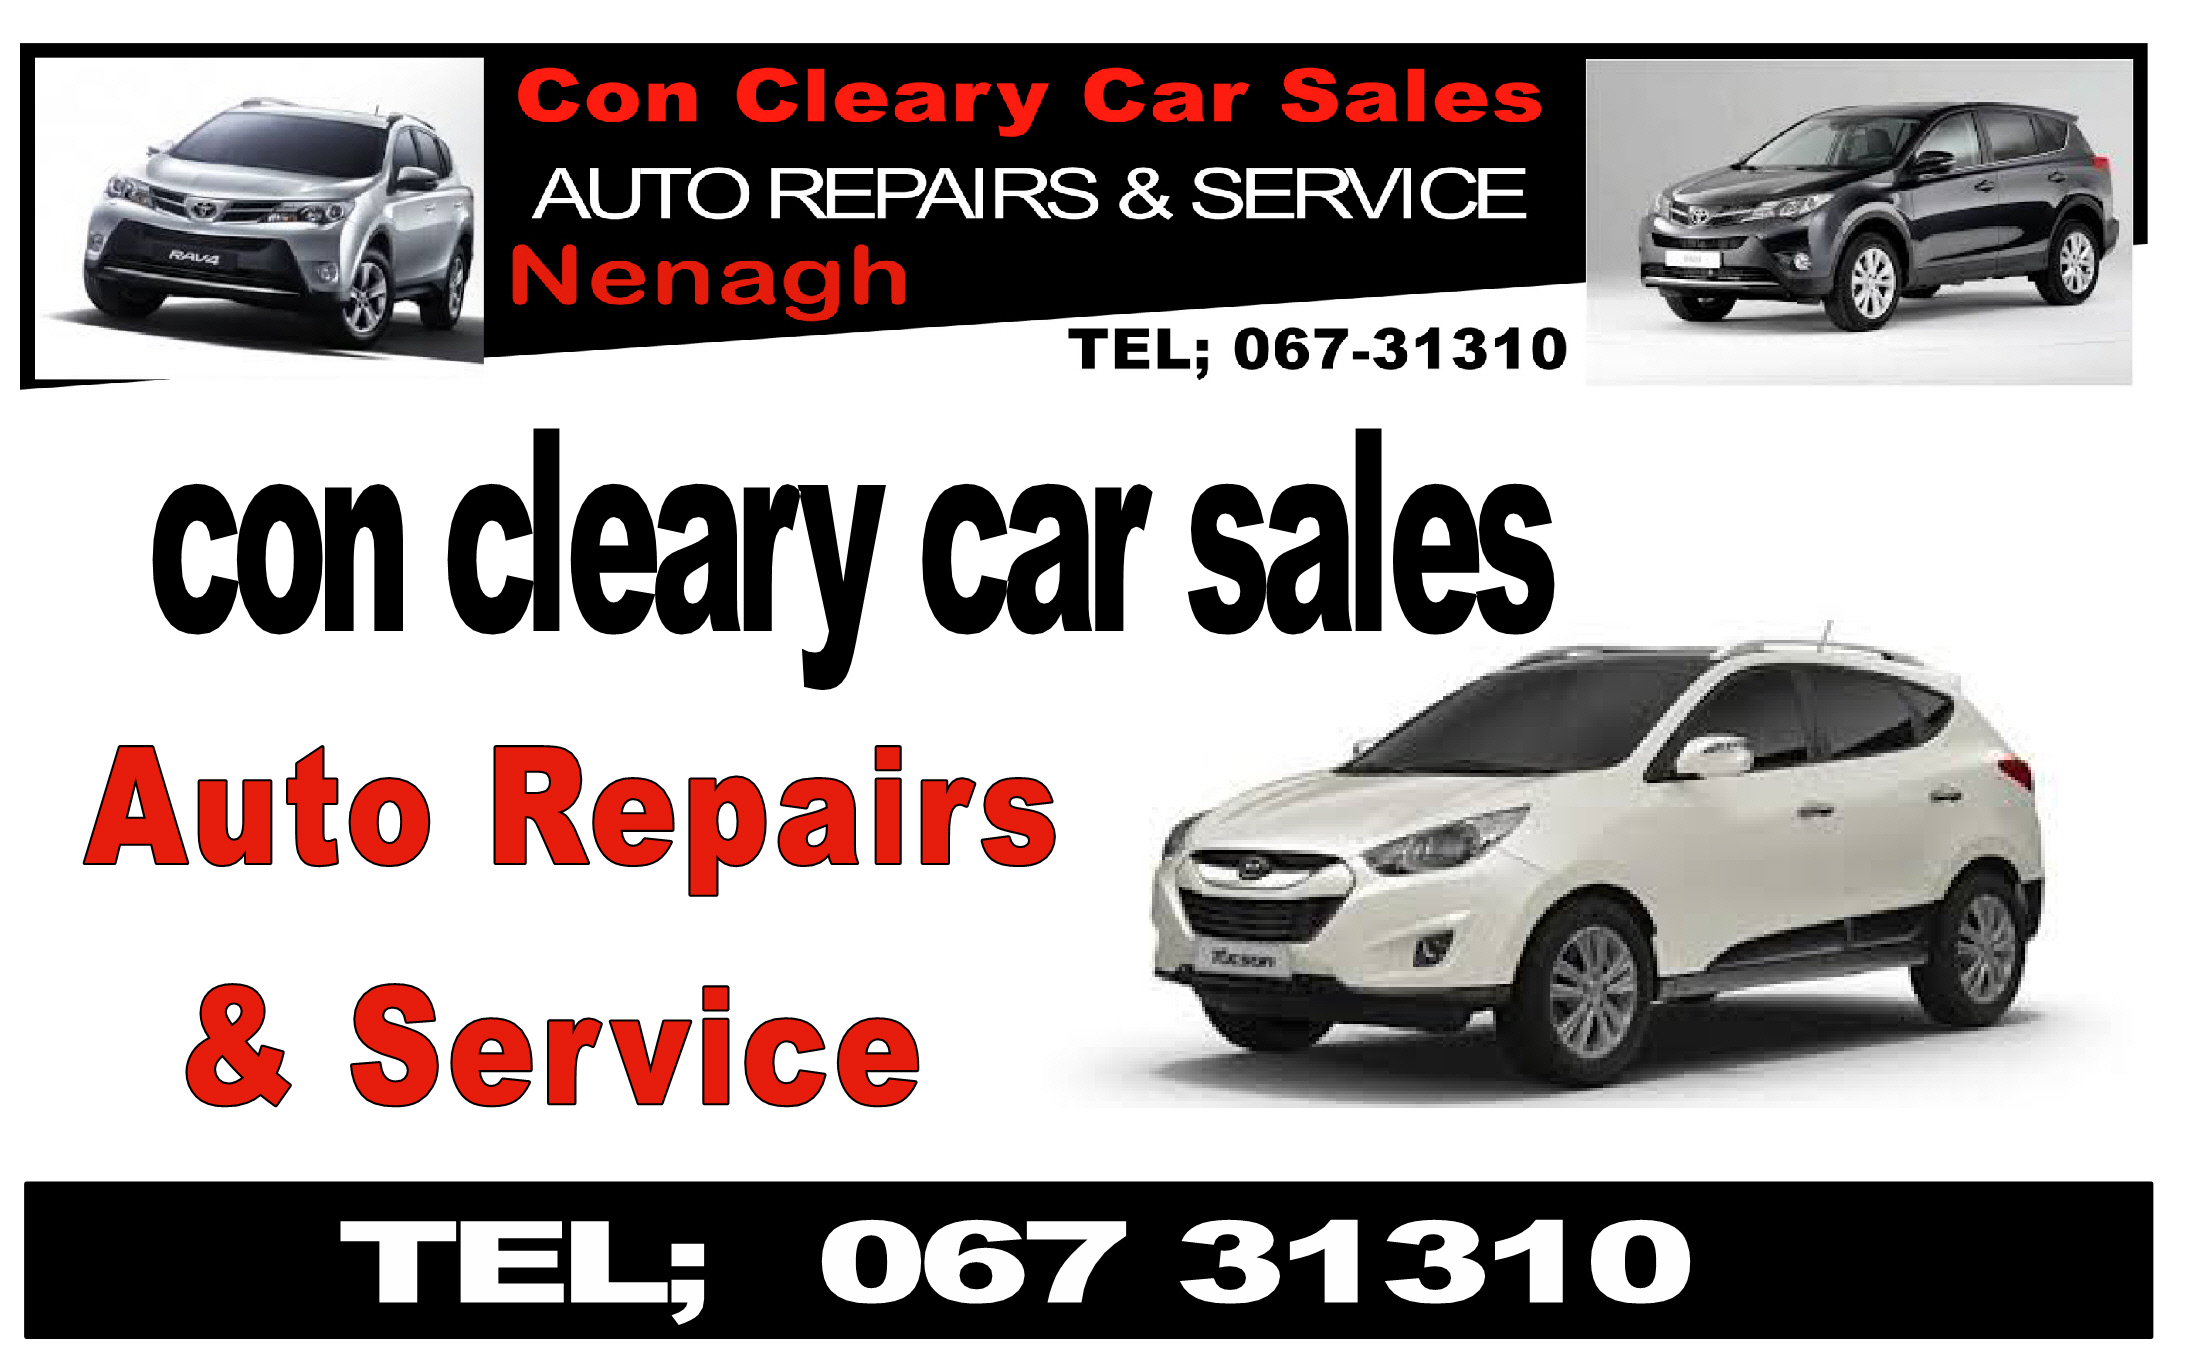 Con Cleary Car Sales Ltd